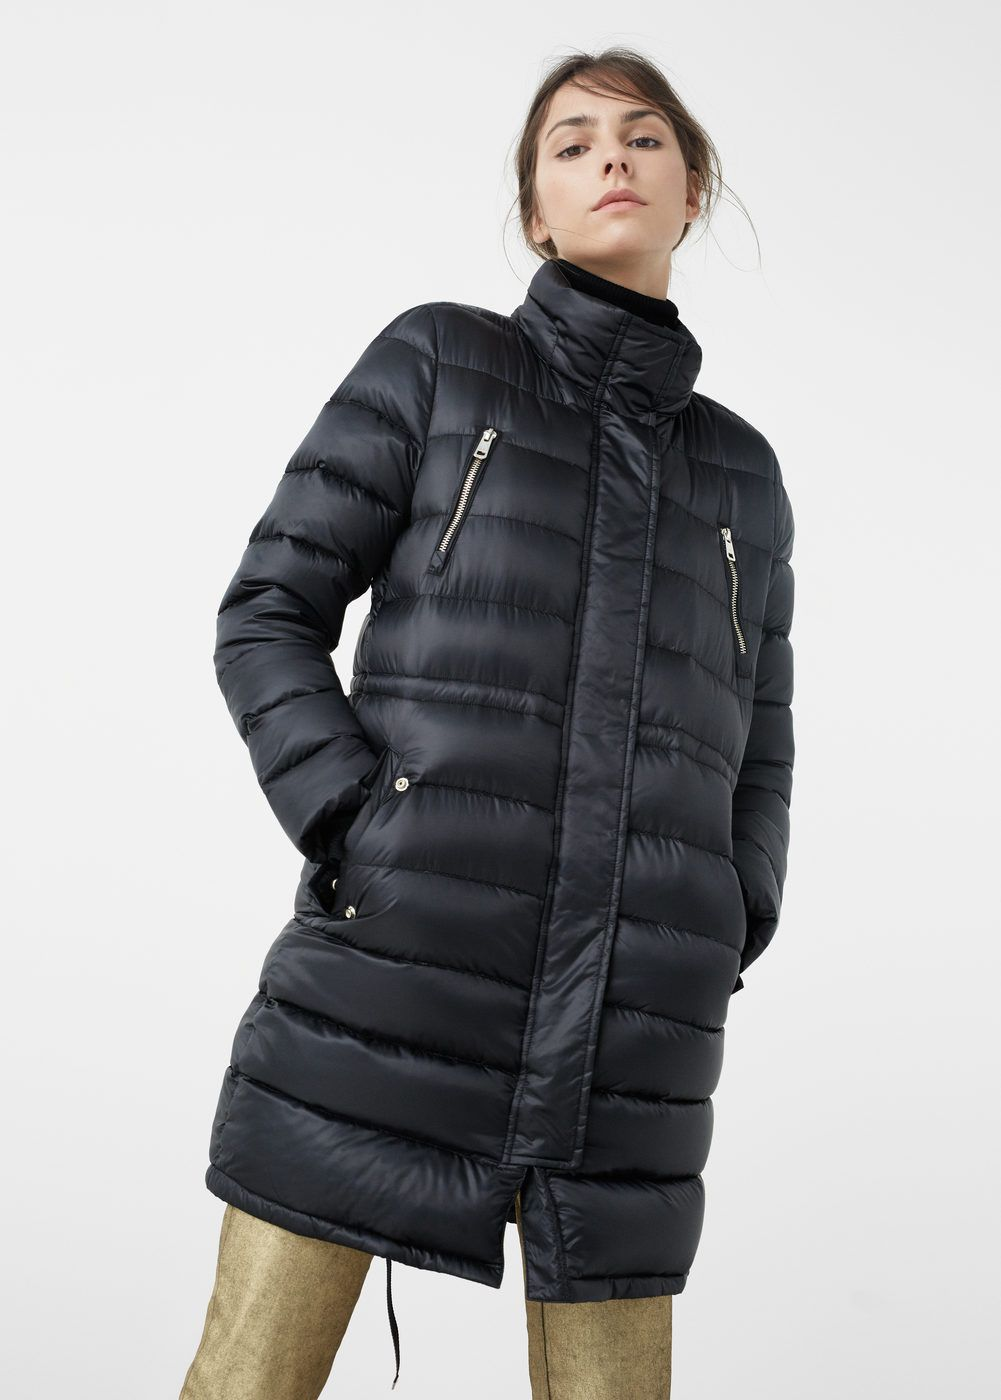 Anorak impermeable plumón - Mujer  64c3d96e142f